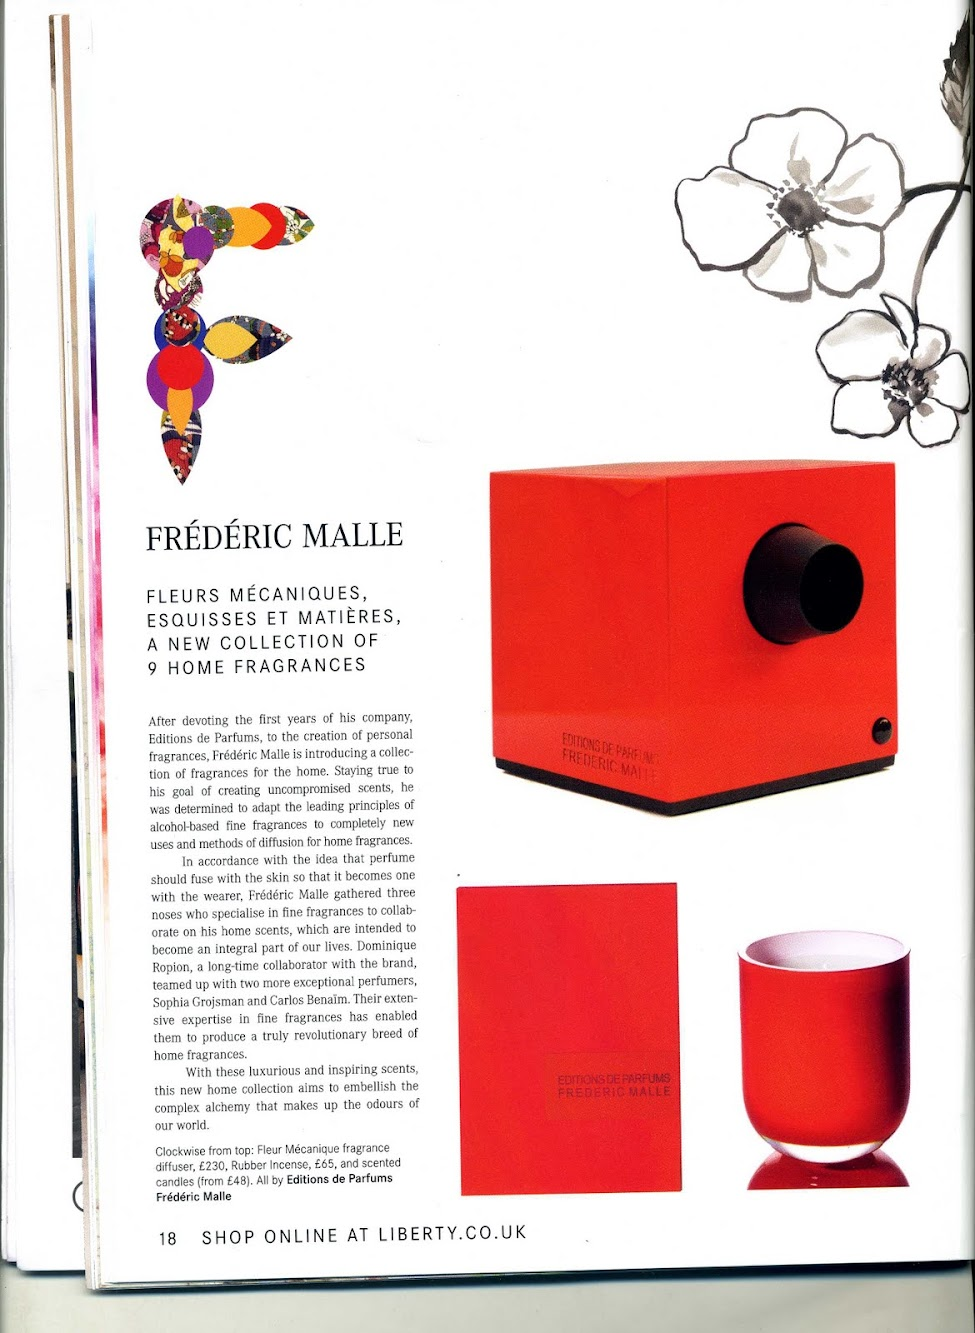 Frederic Malle [New Collection of 9 Home Fragrances]